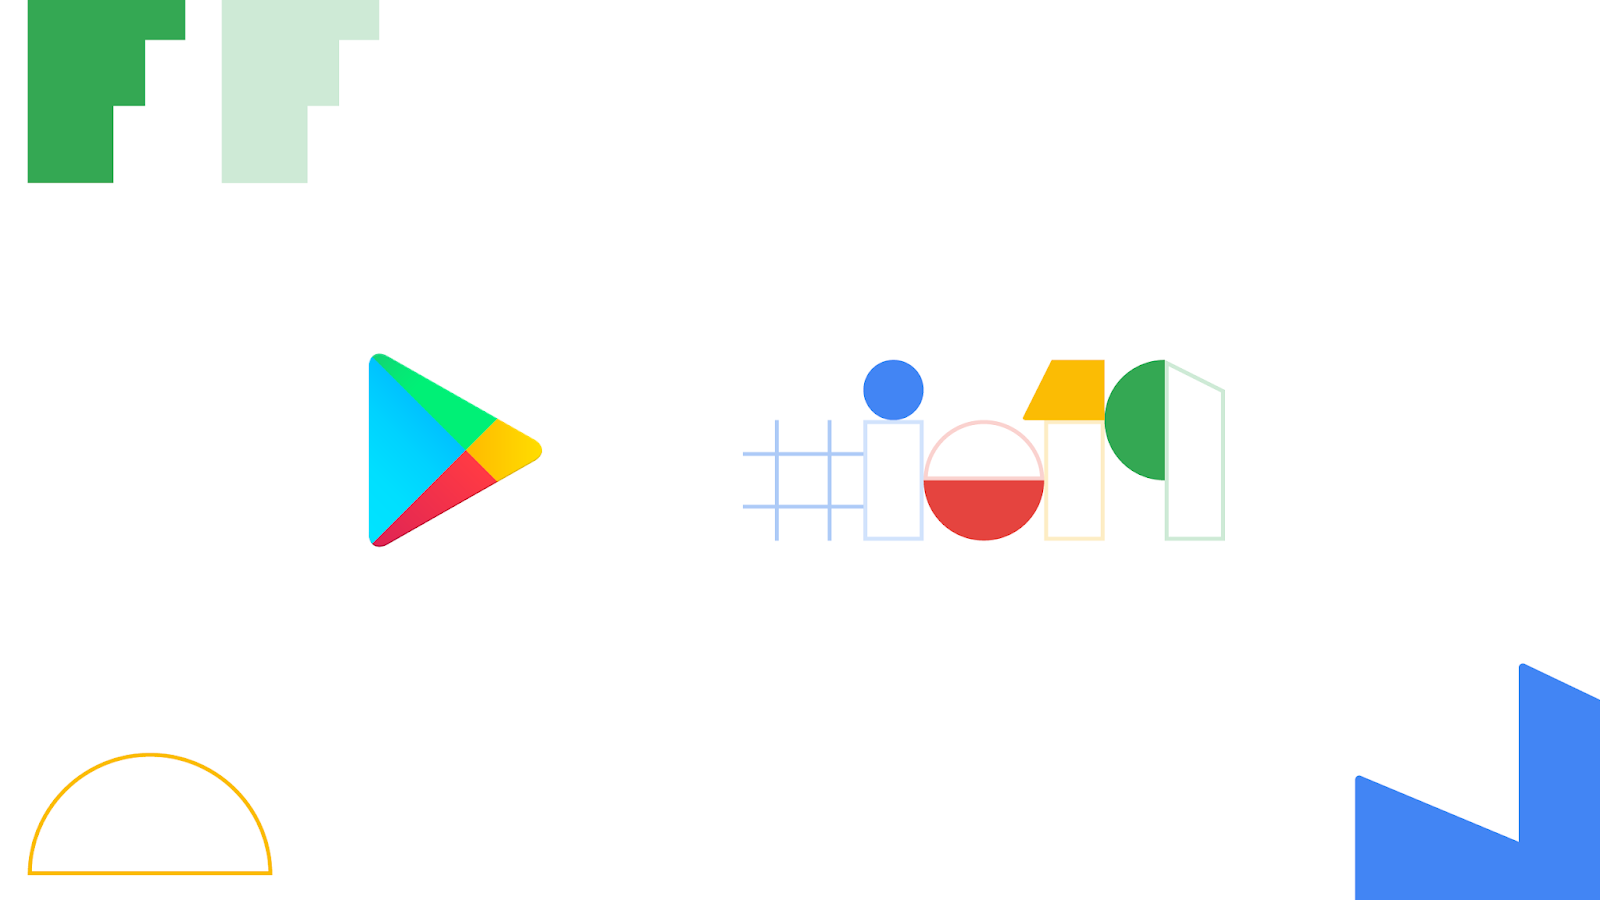 Play and #io19 logos with geometric shapes